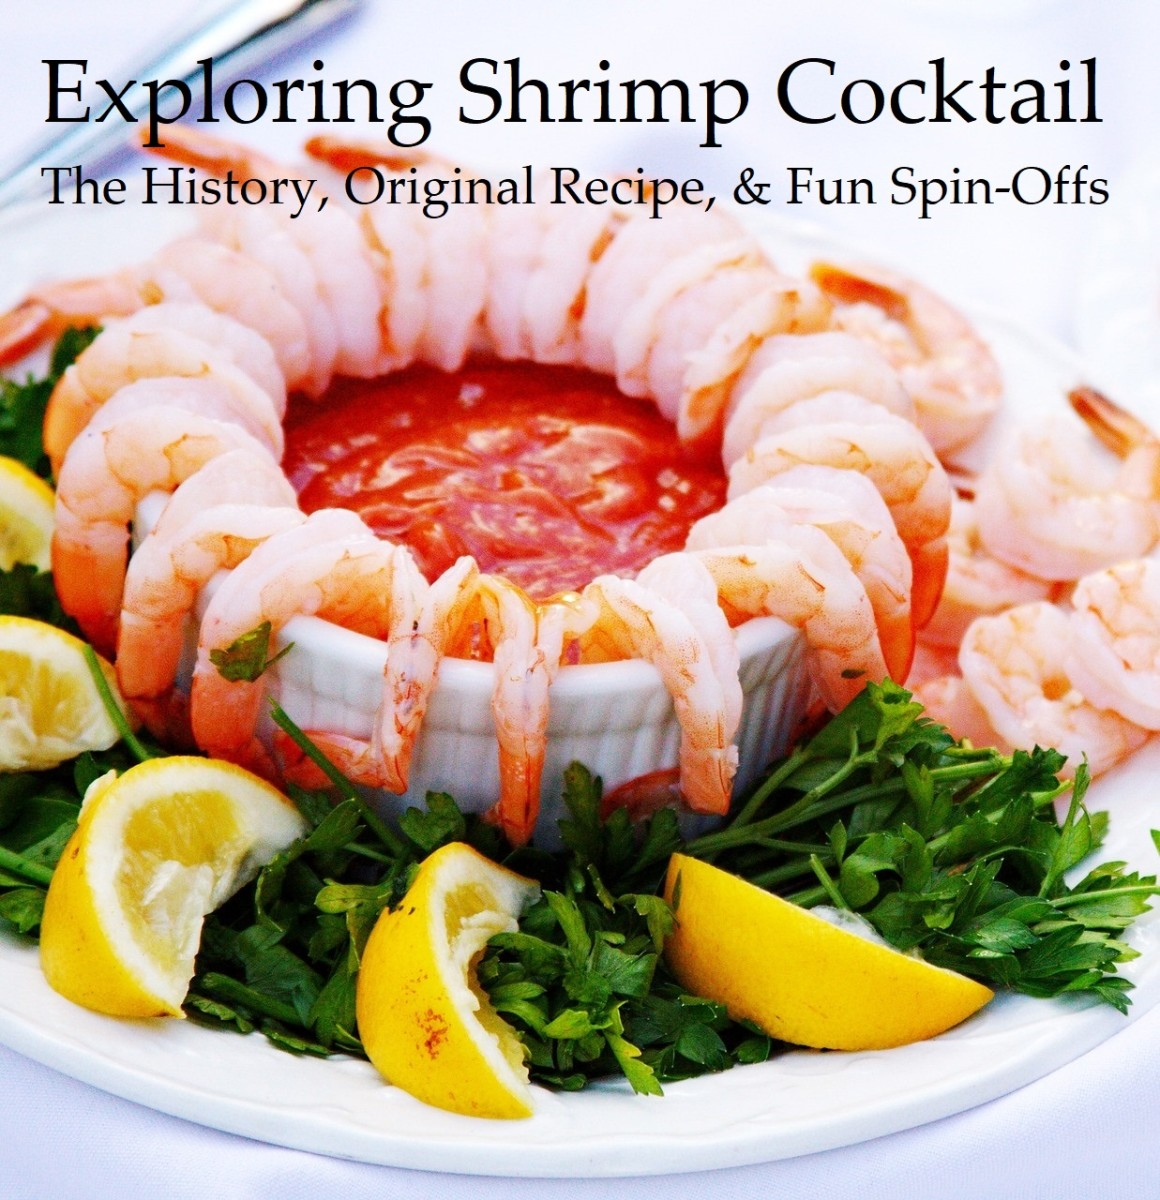 Exploring Shrimp Cocktail: The History, Original Recipe, and Spin-Offs